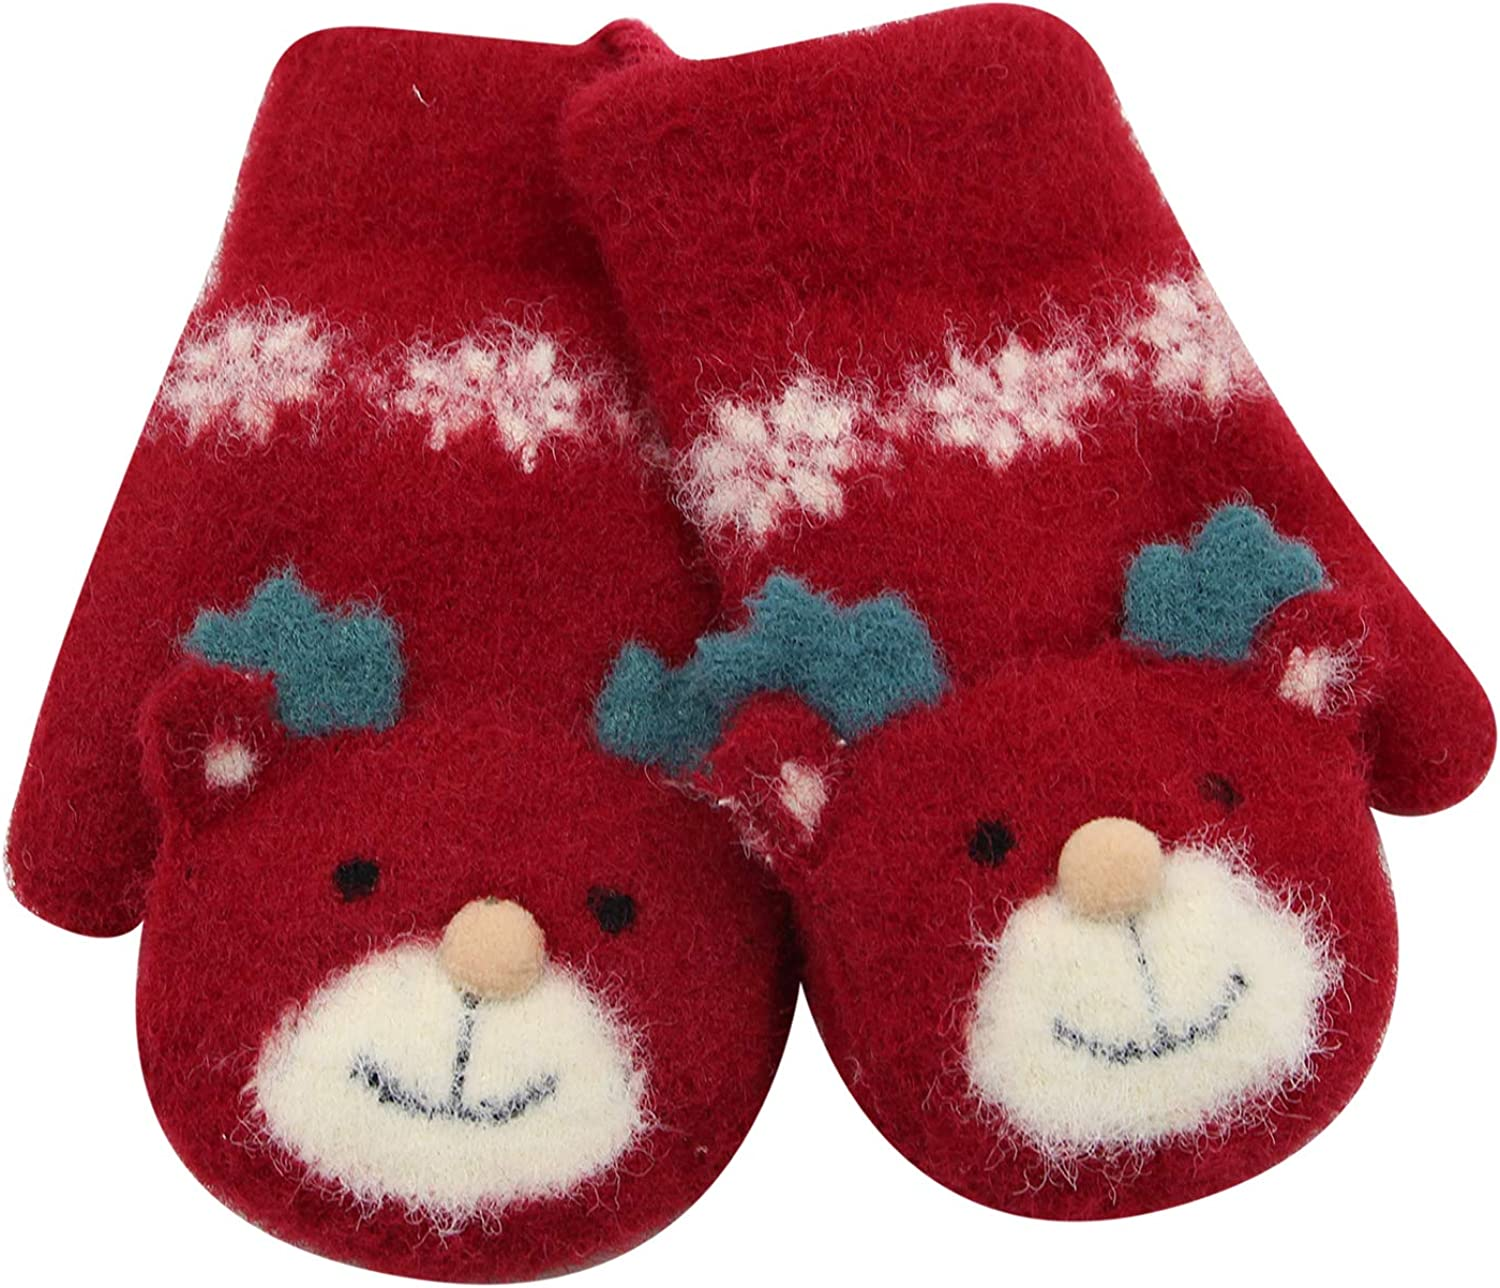 Kids Cute Winter Warm Mittens Gloves Lovely Thicken Knitted Gloves with String for Boys Girls